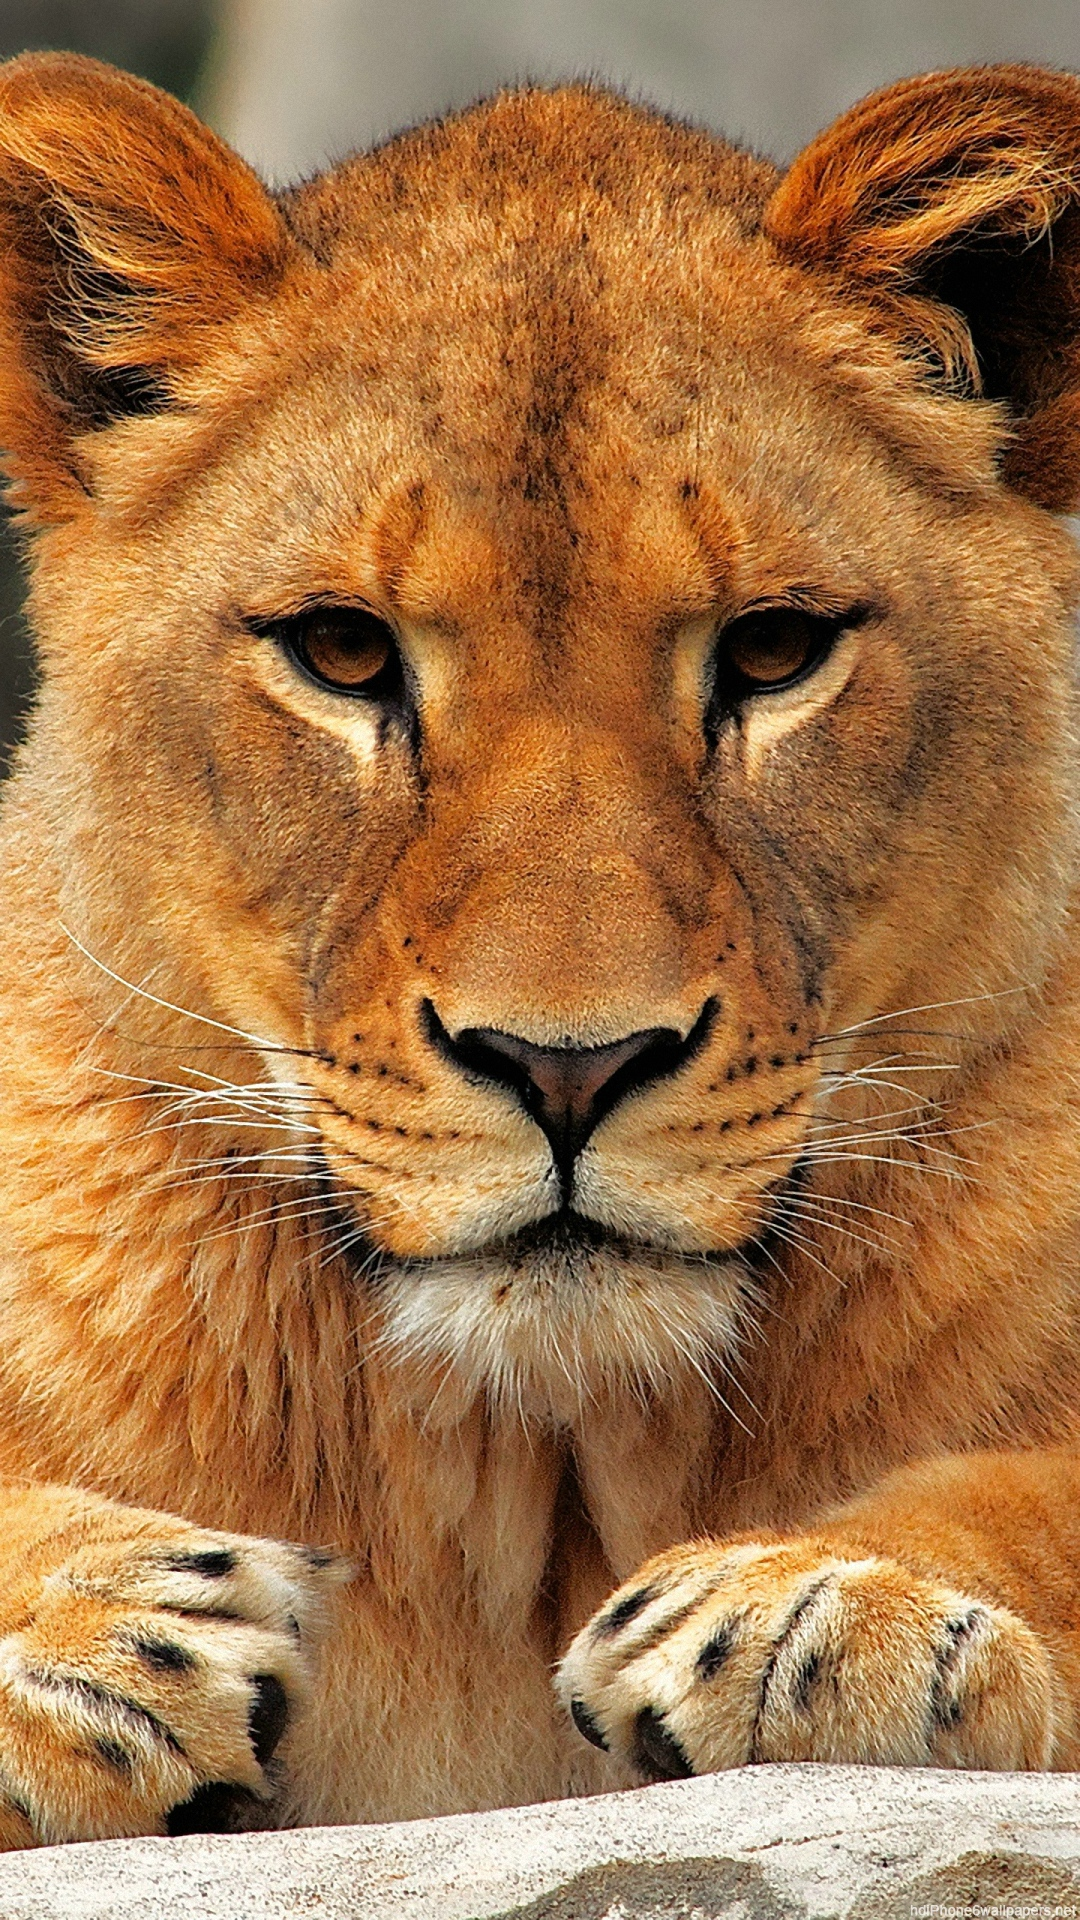 Free Download Lion Iphone 6 Wallpapers Hd Animal Iphone 6 Plus